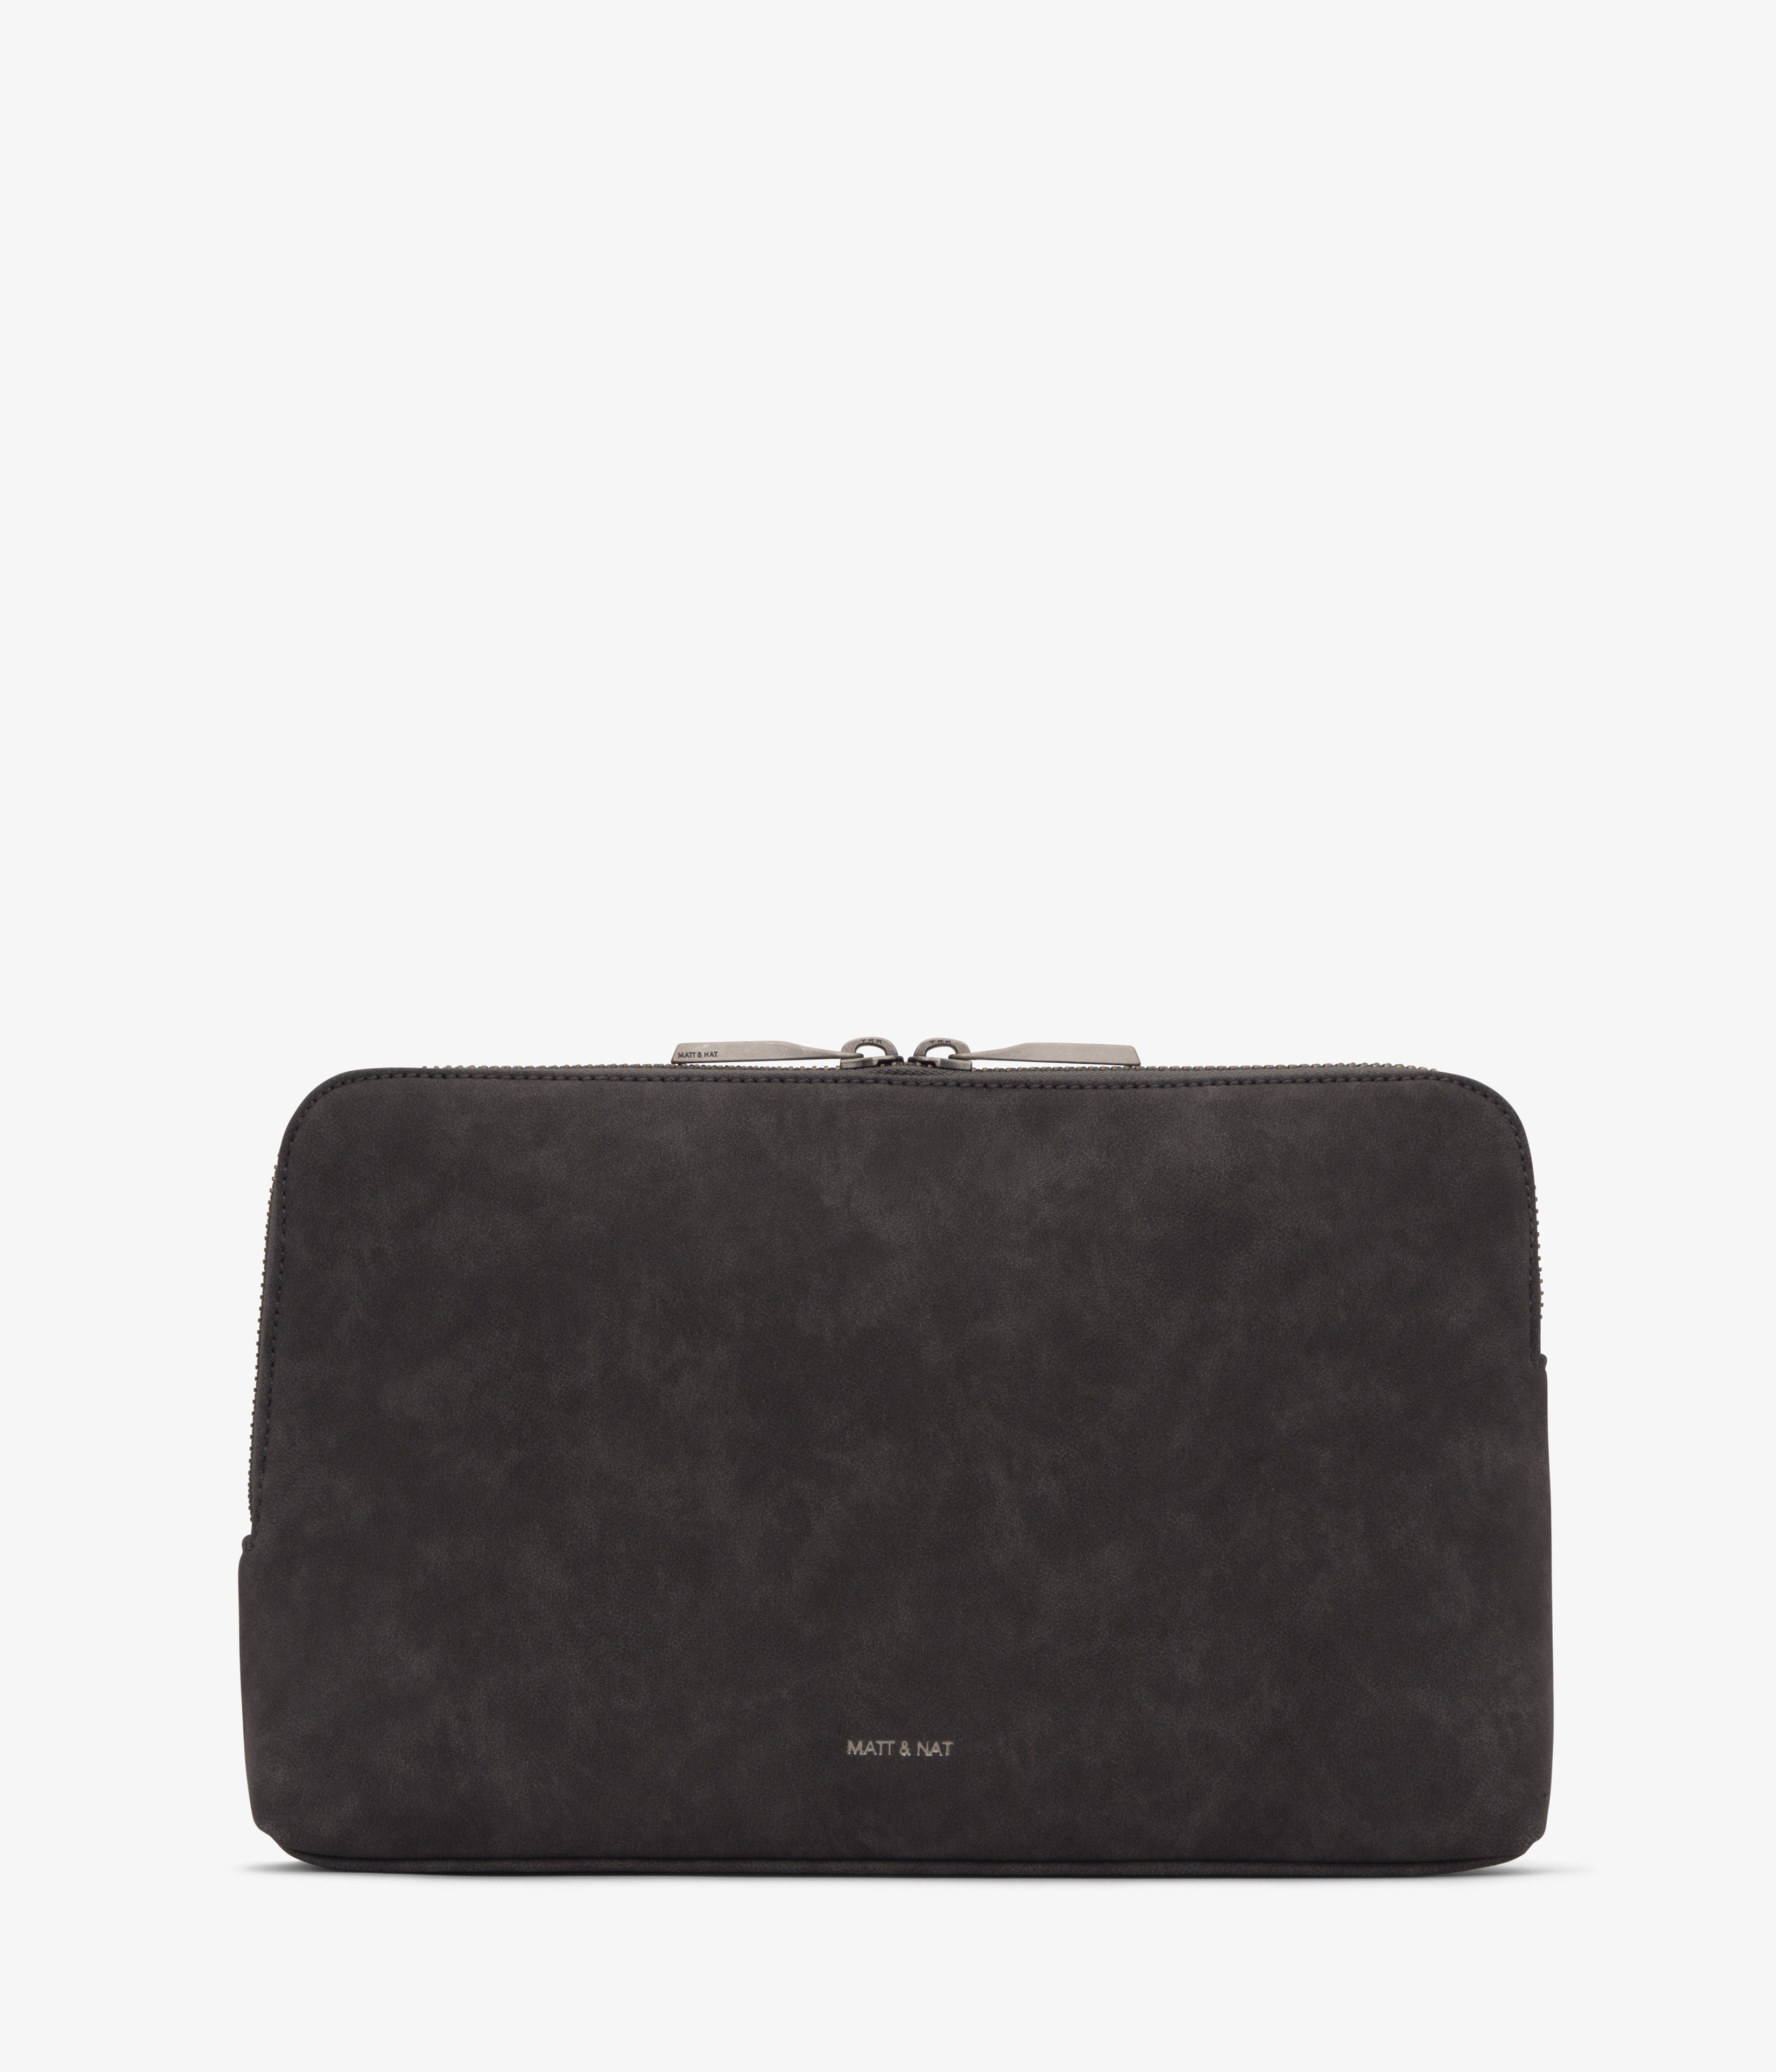 166bdf001c8 Matt & Nat // Harper Suede Clutch – Coal Miner's Daughter